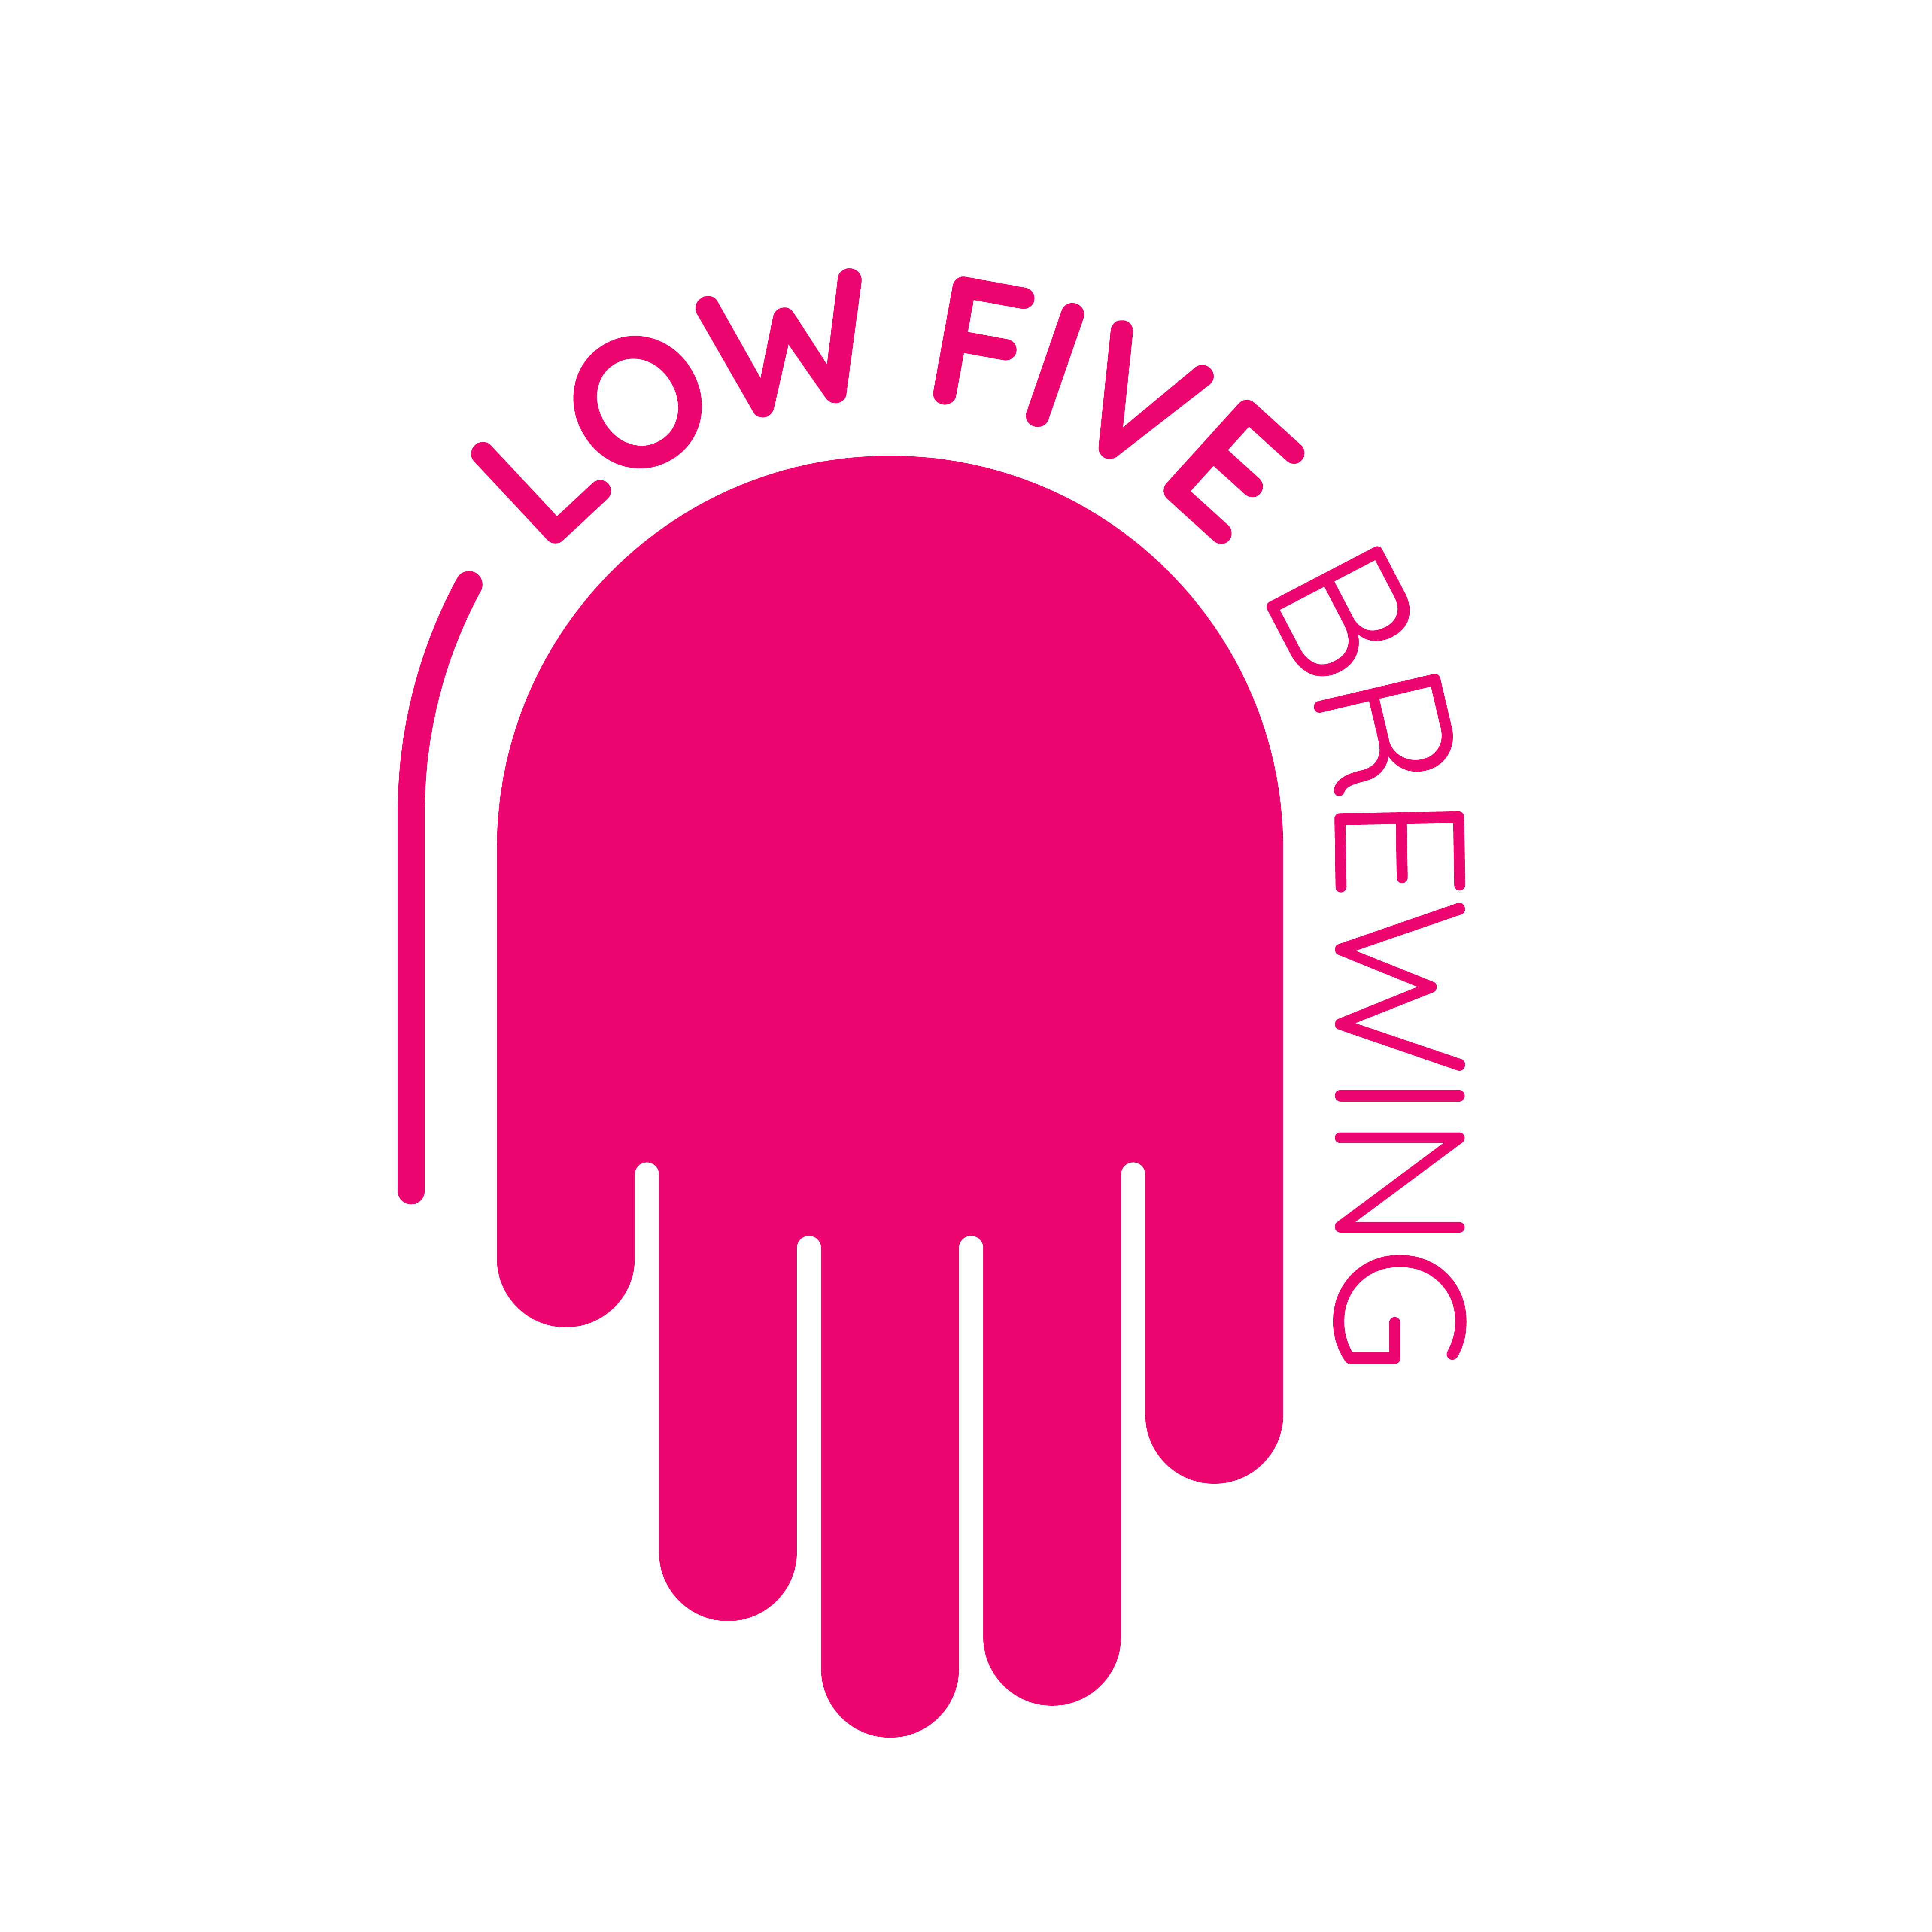 Low Five Brewing